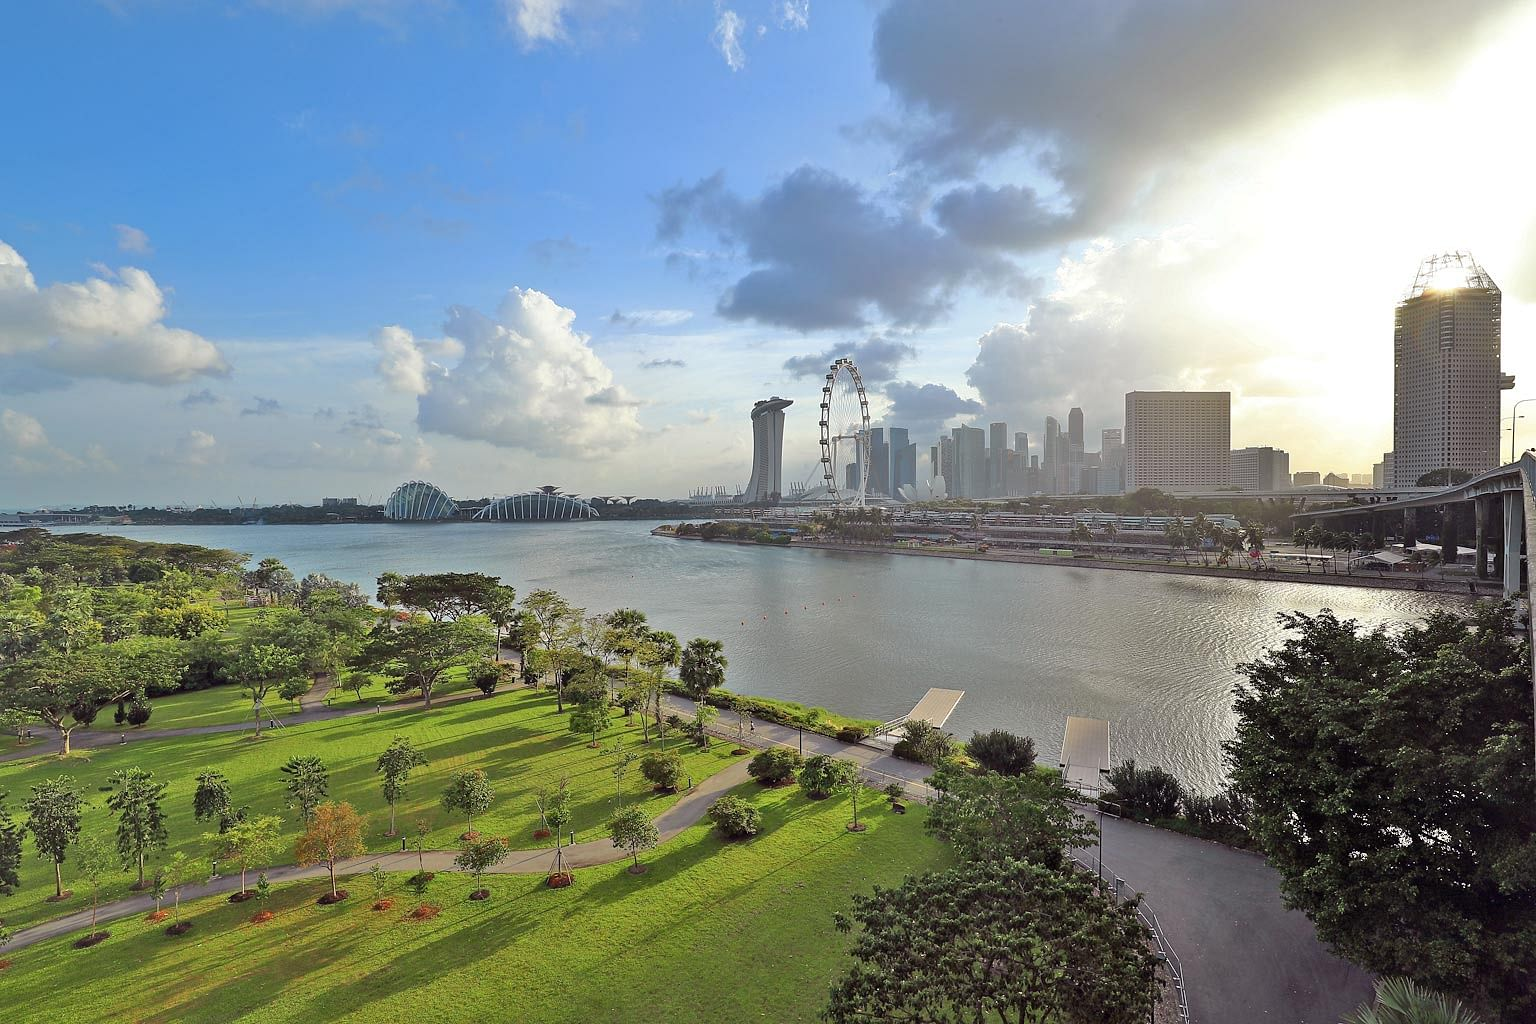 The view of Singapore's city centre as seen from the Bay East Garden. It is a reminder of how the nation's founding leaders looked ahead and built for the next generation, as well as an inspiration for Singaporeans to continue doing that.